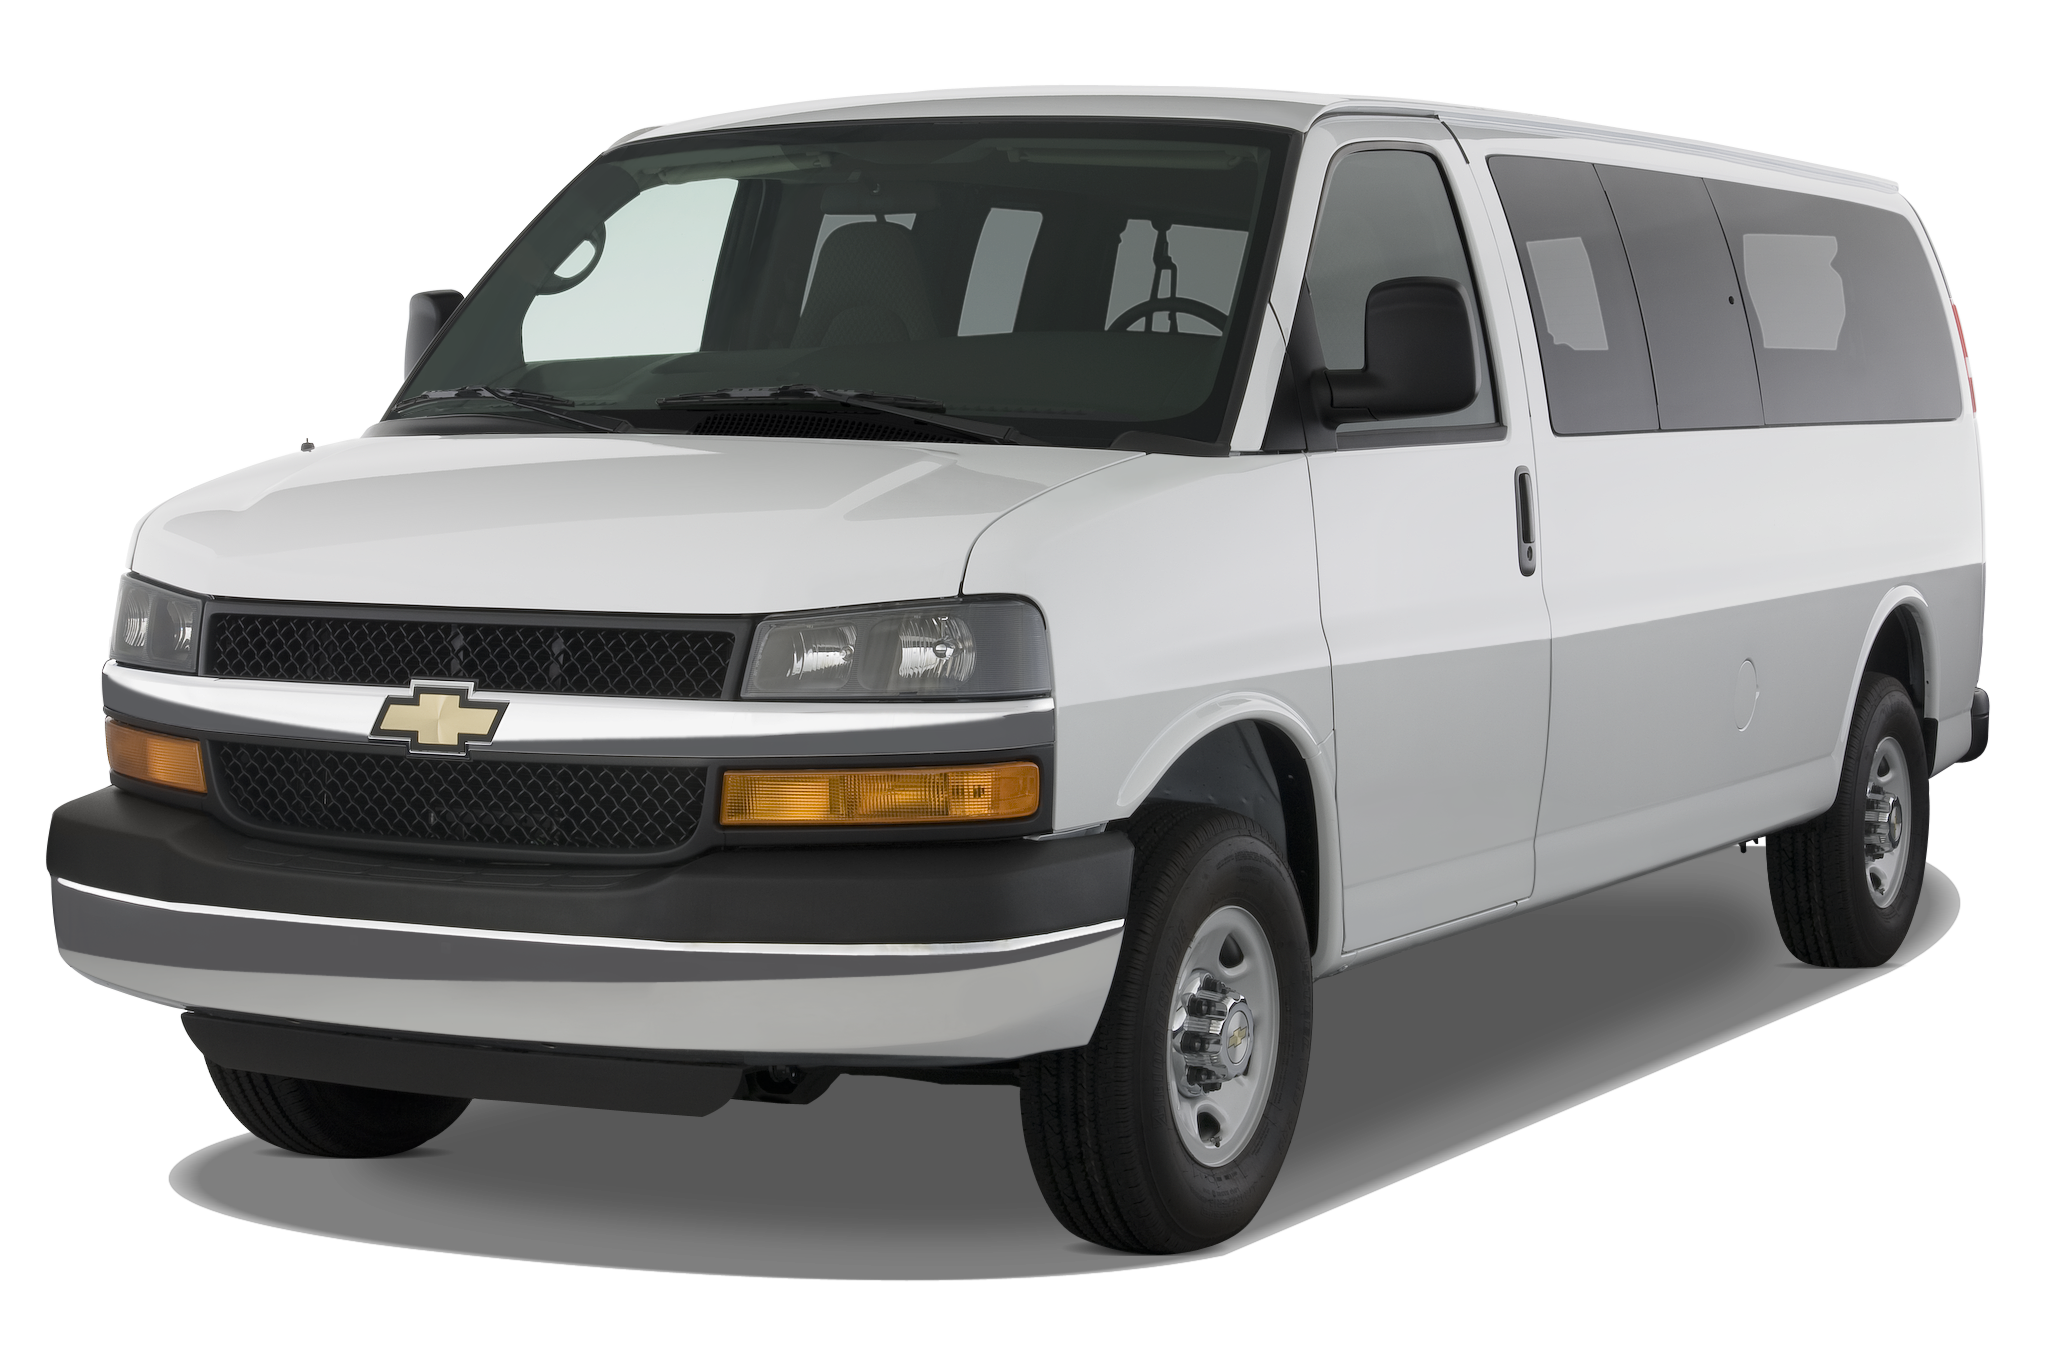 Chevrolet Express 3500 Ls Extended 2013 International Price Overview 2003 Chevy Silverado Fuel Filter Location Prices Specs